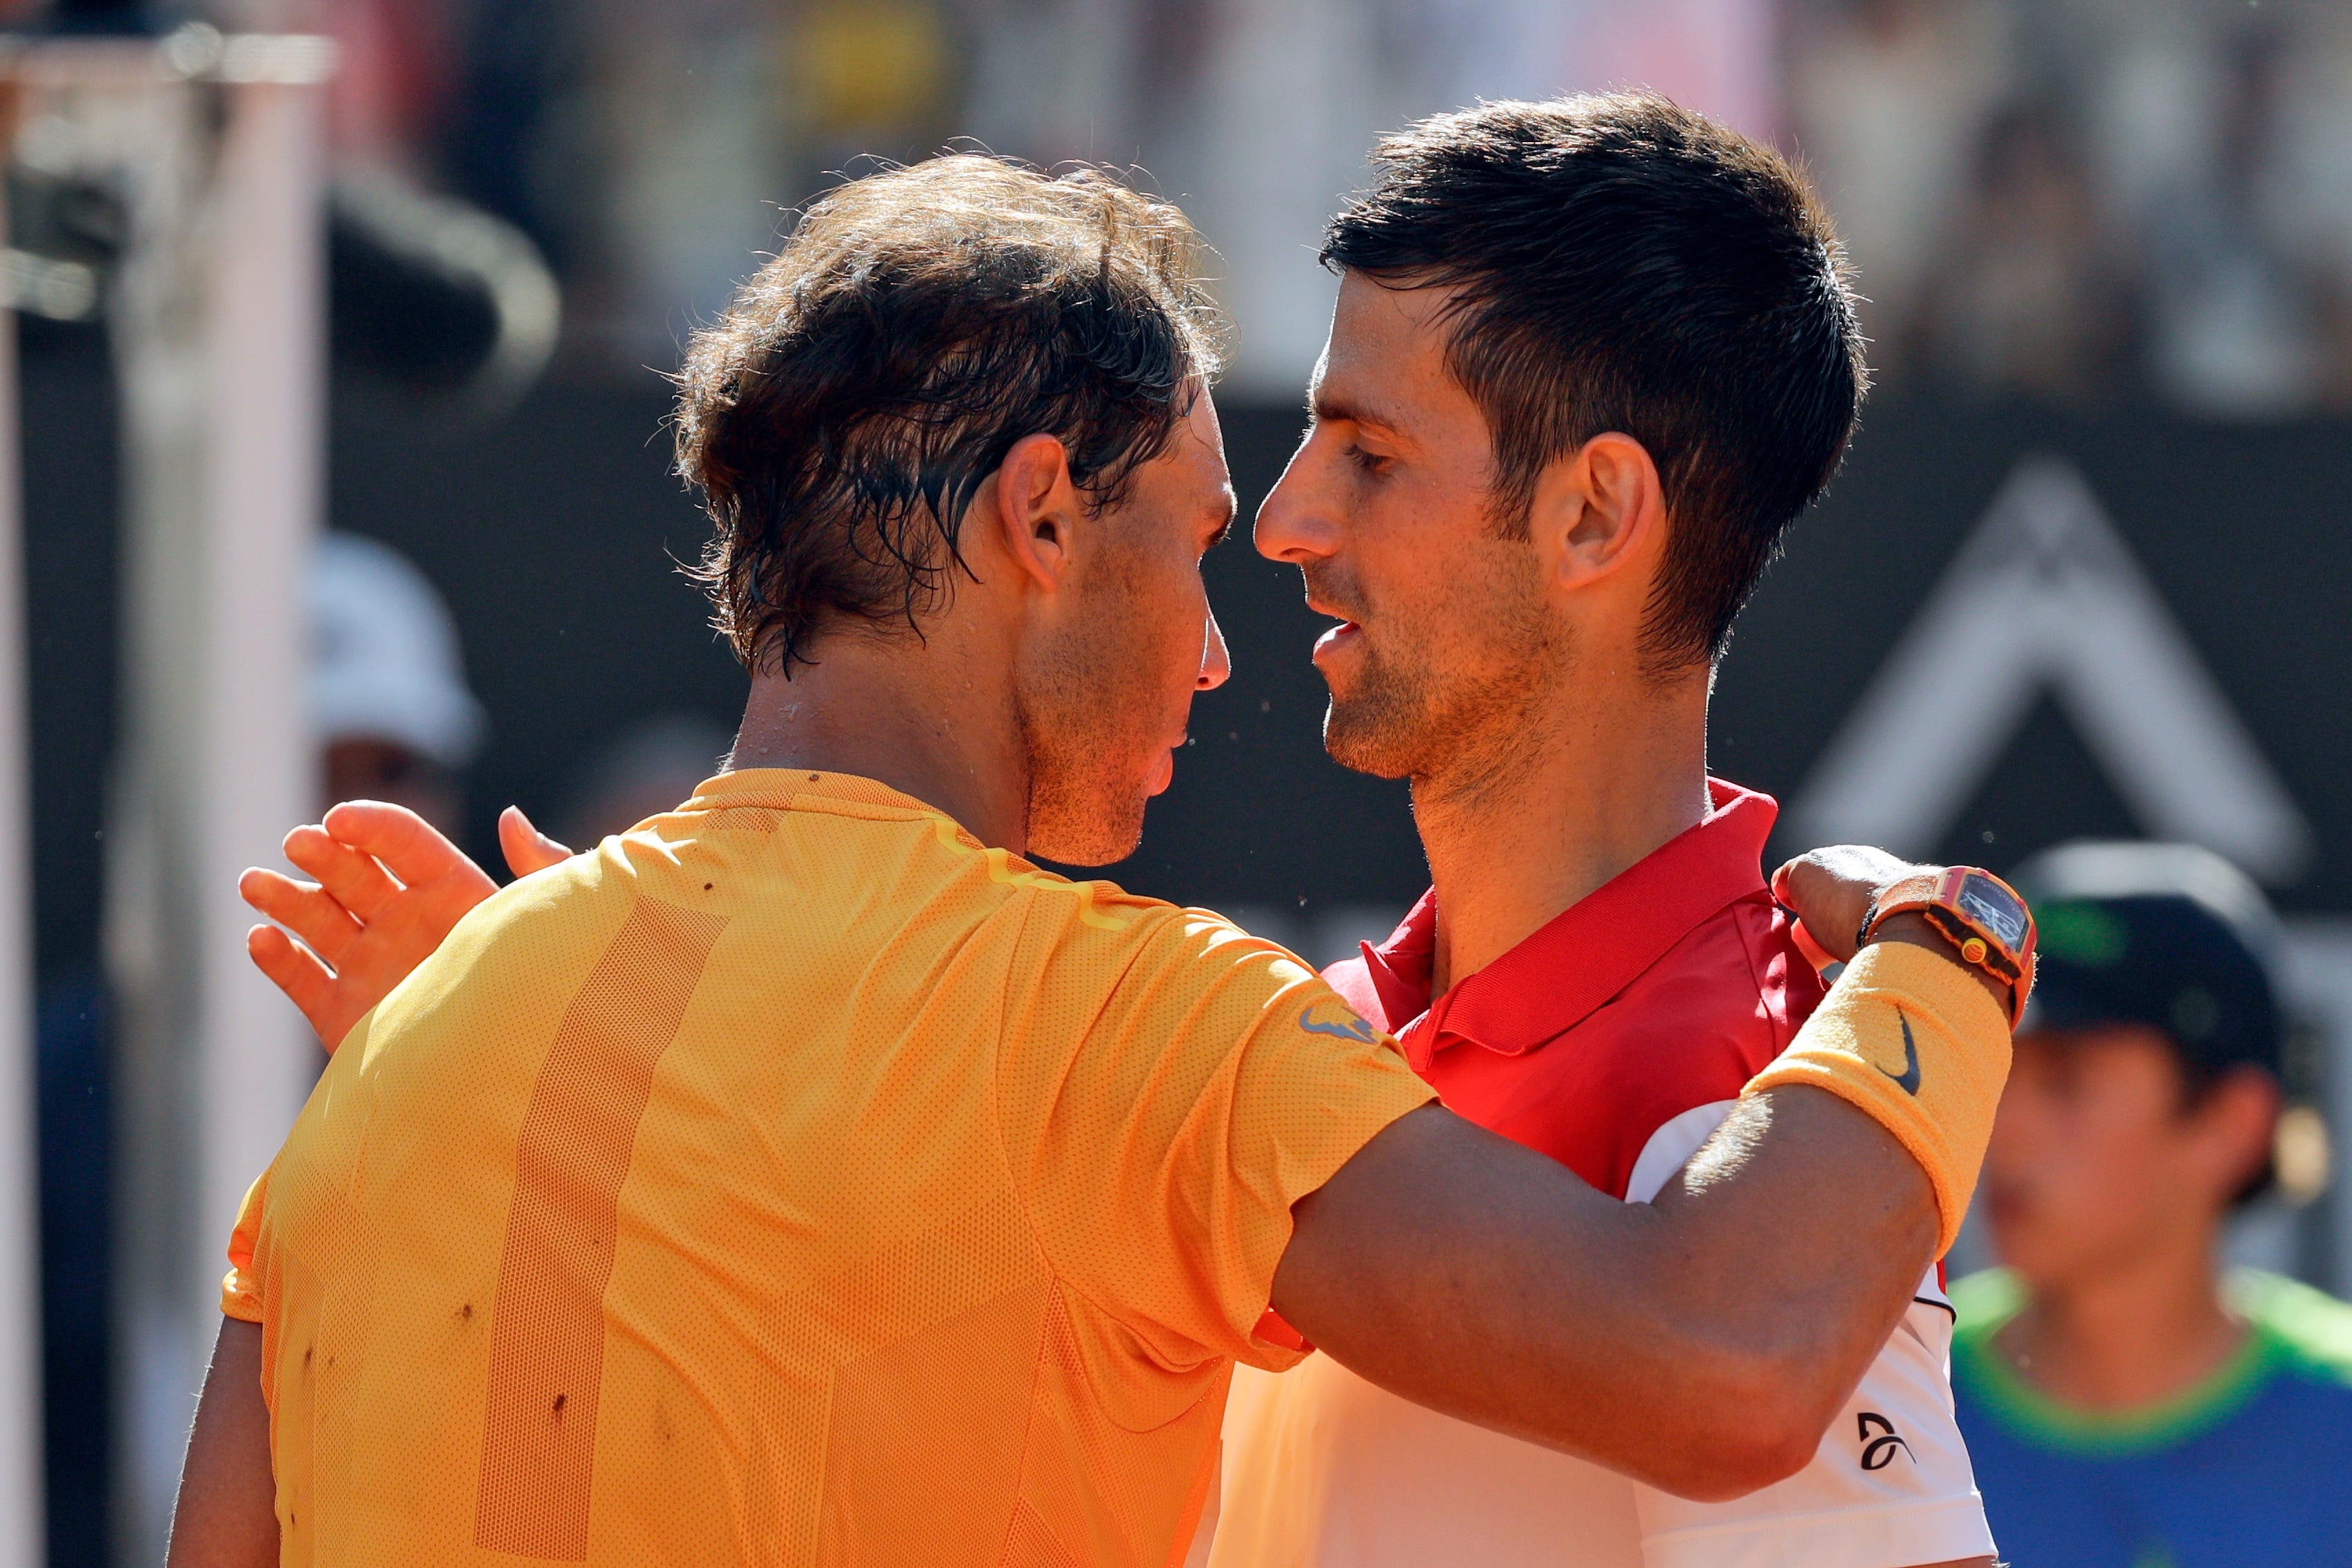 Rafael Nadal beats Novak Djokovic as rivalry resumes in Rome semifinals